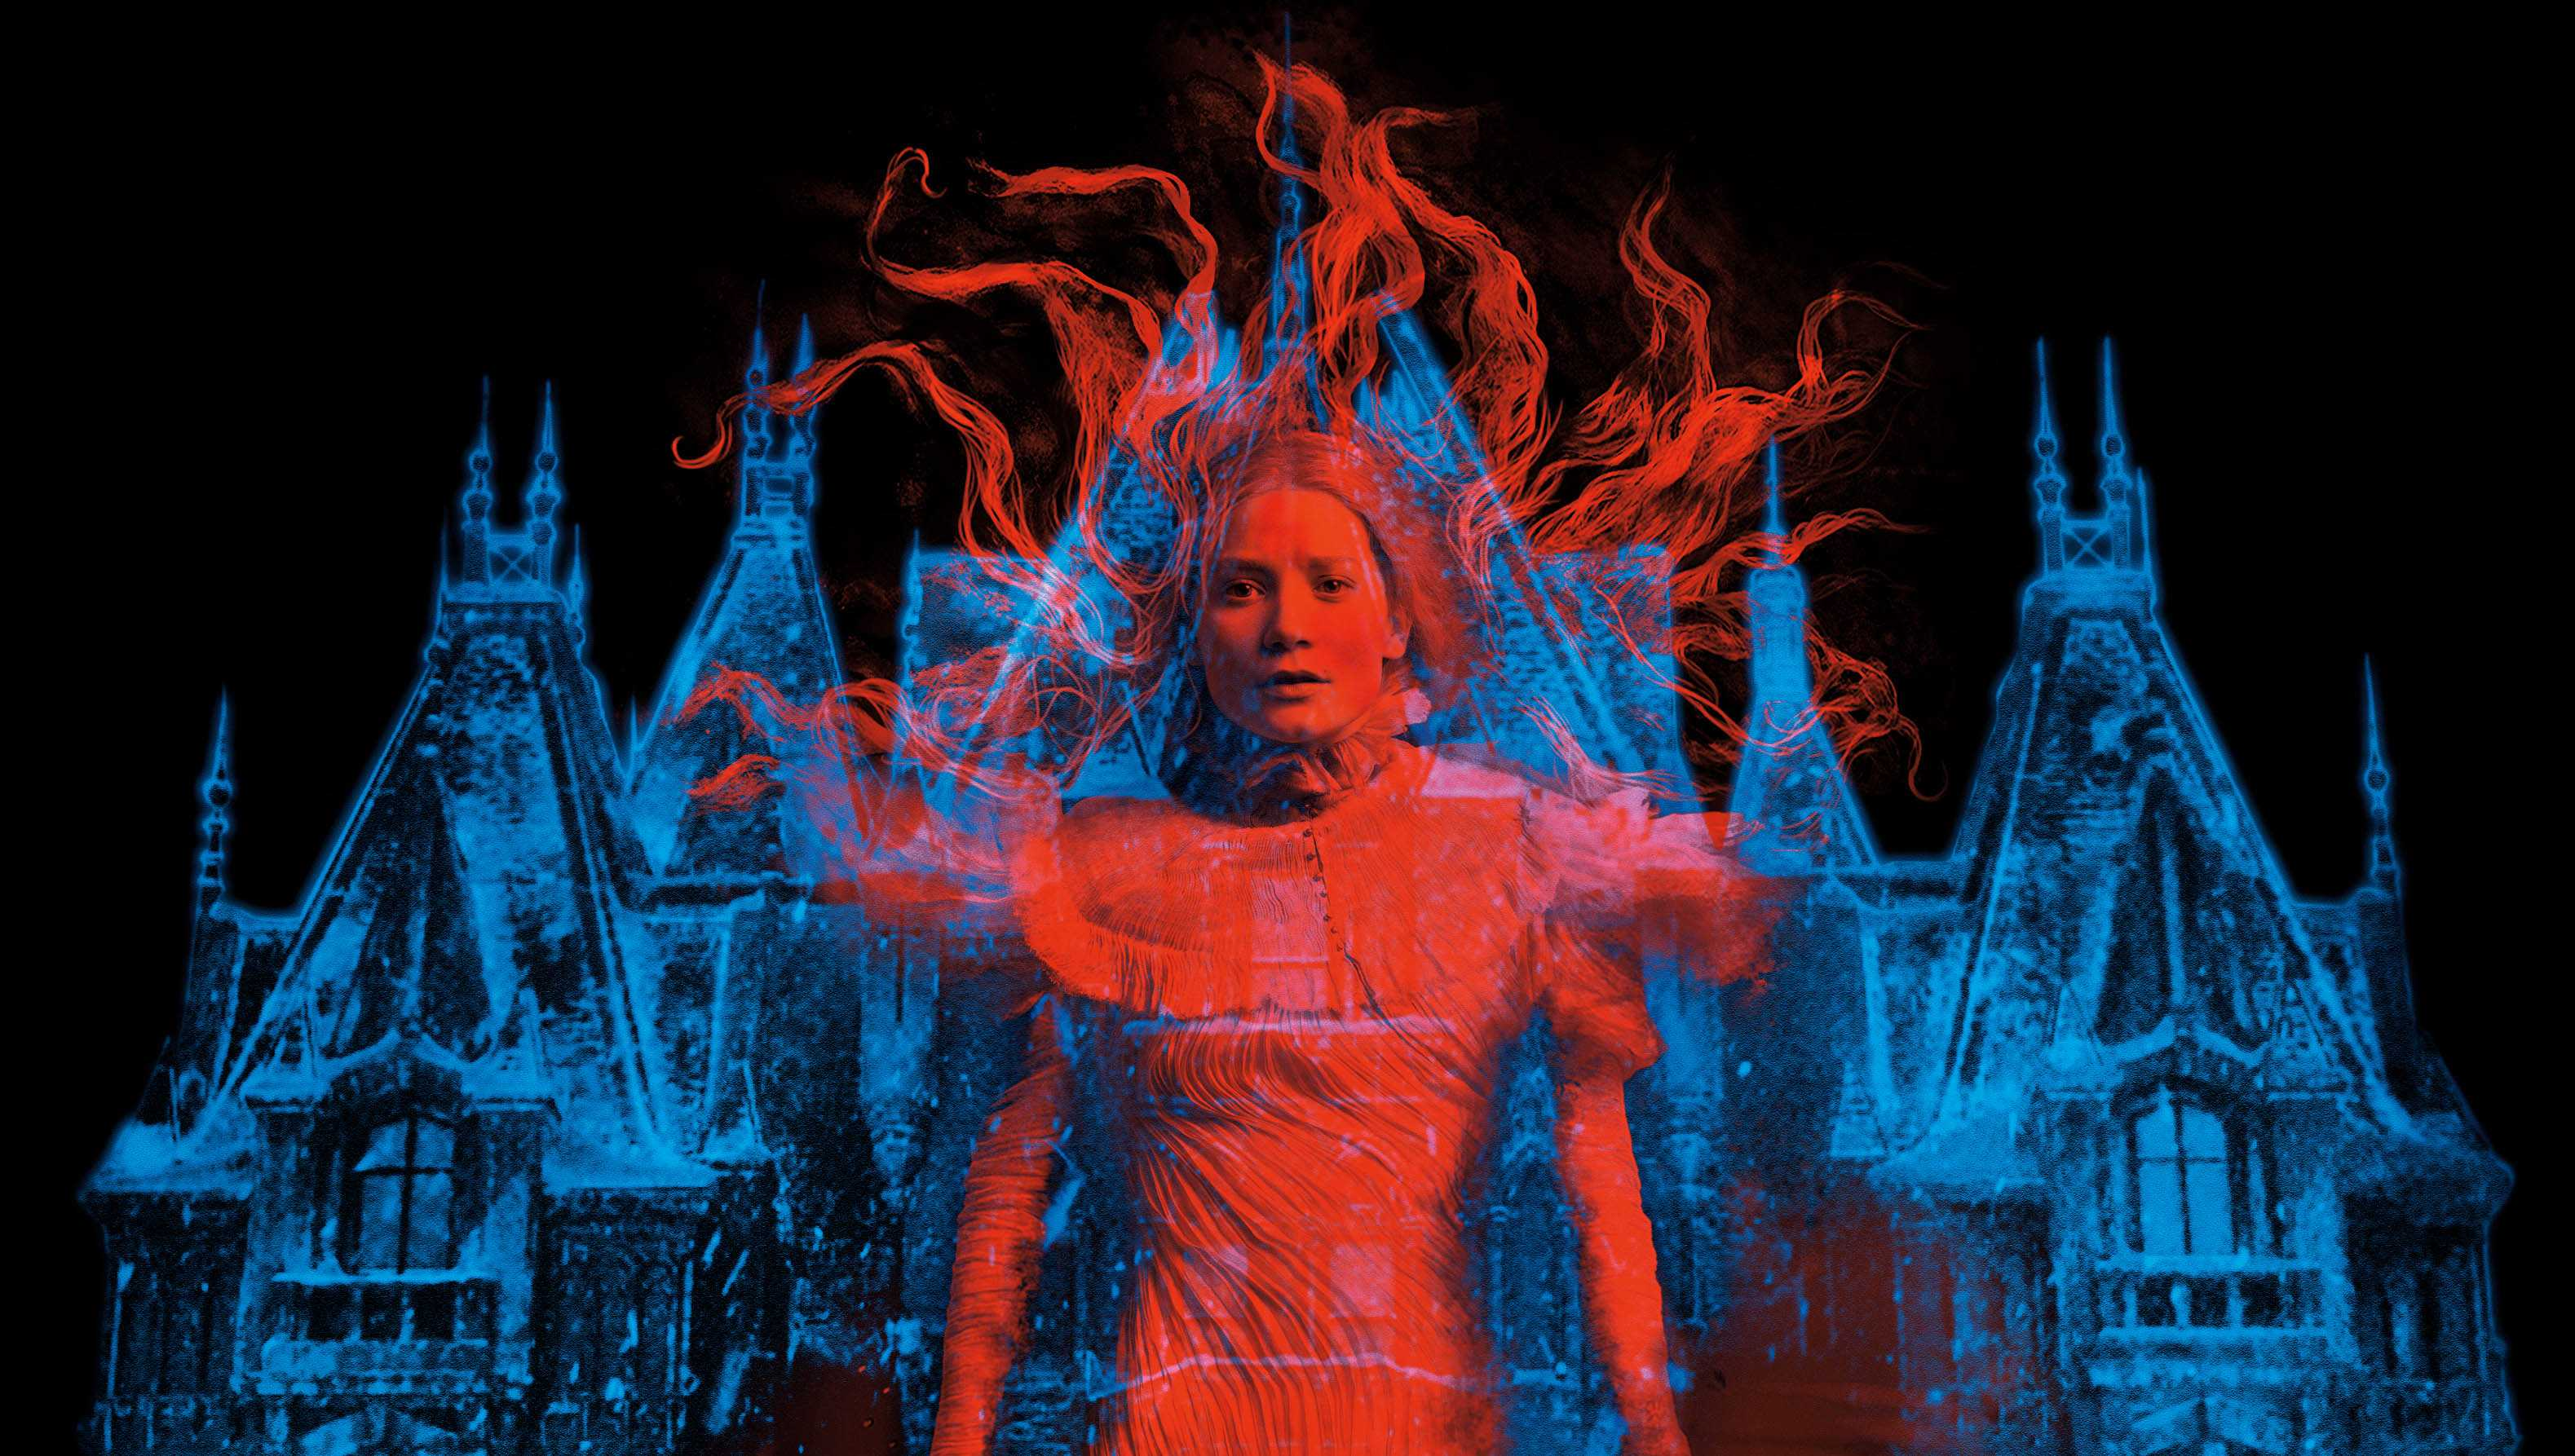 Photo from epk.tv Mia Wasikowska in a promo for Guillermo del Toro's gothic romance mystery,